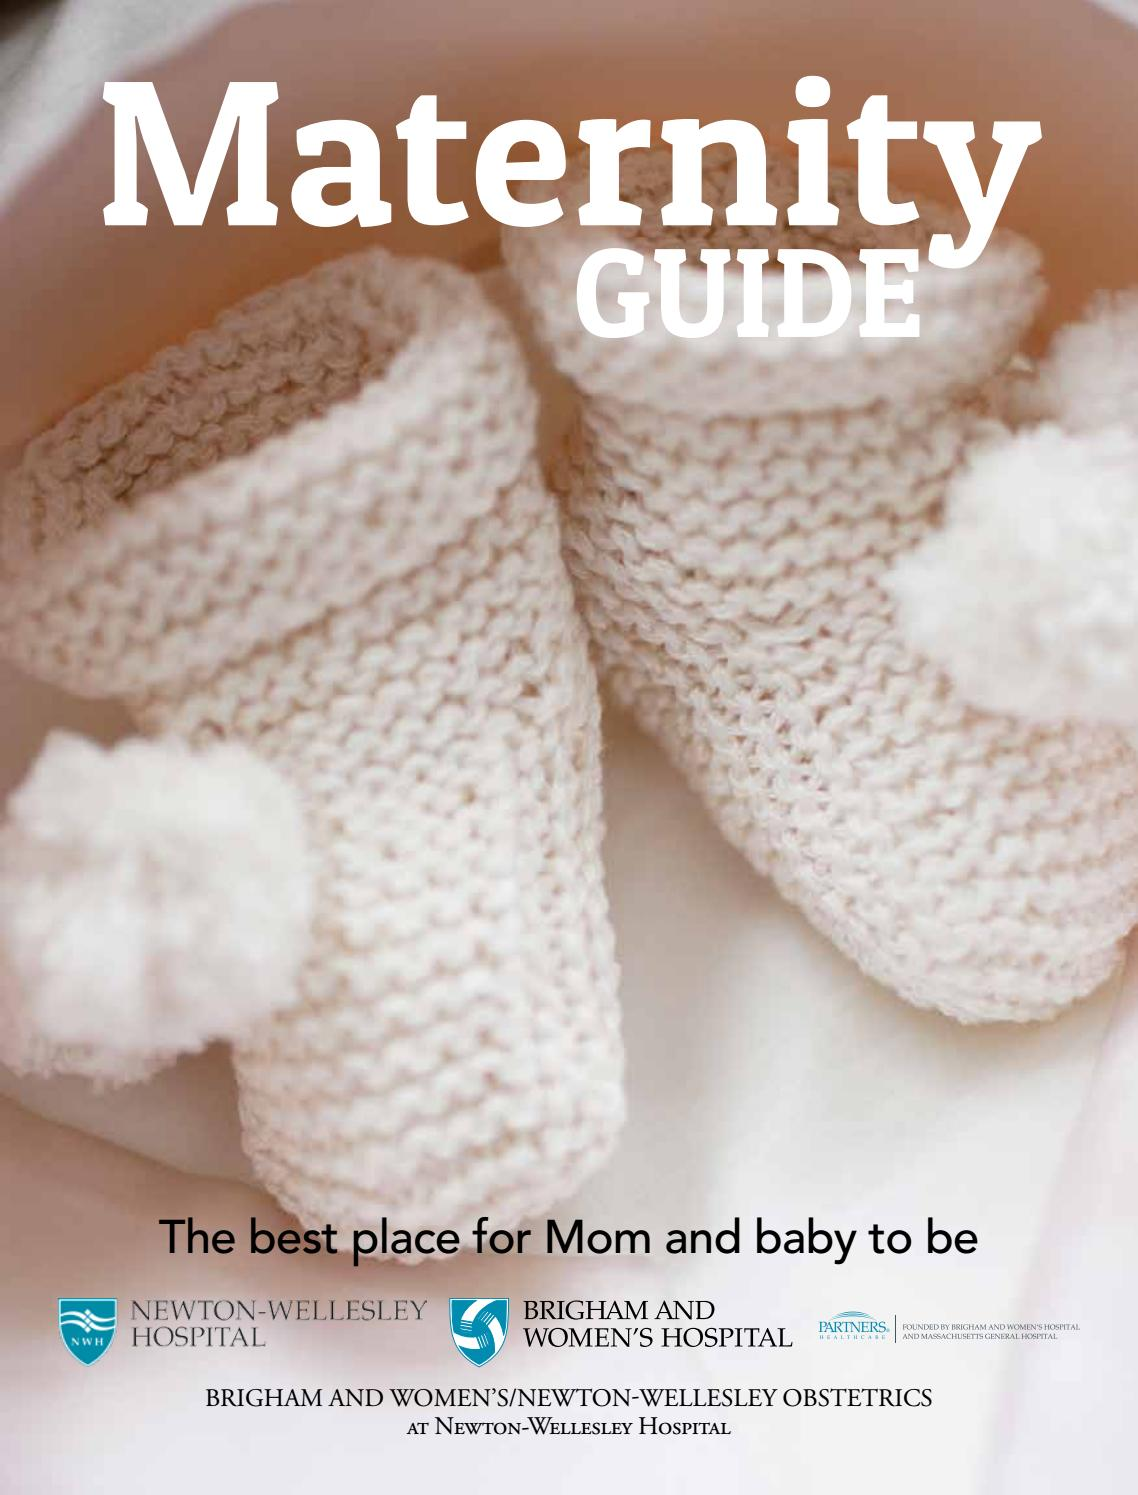 Maternity Guide: Newton-Wellesley Hospital by